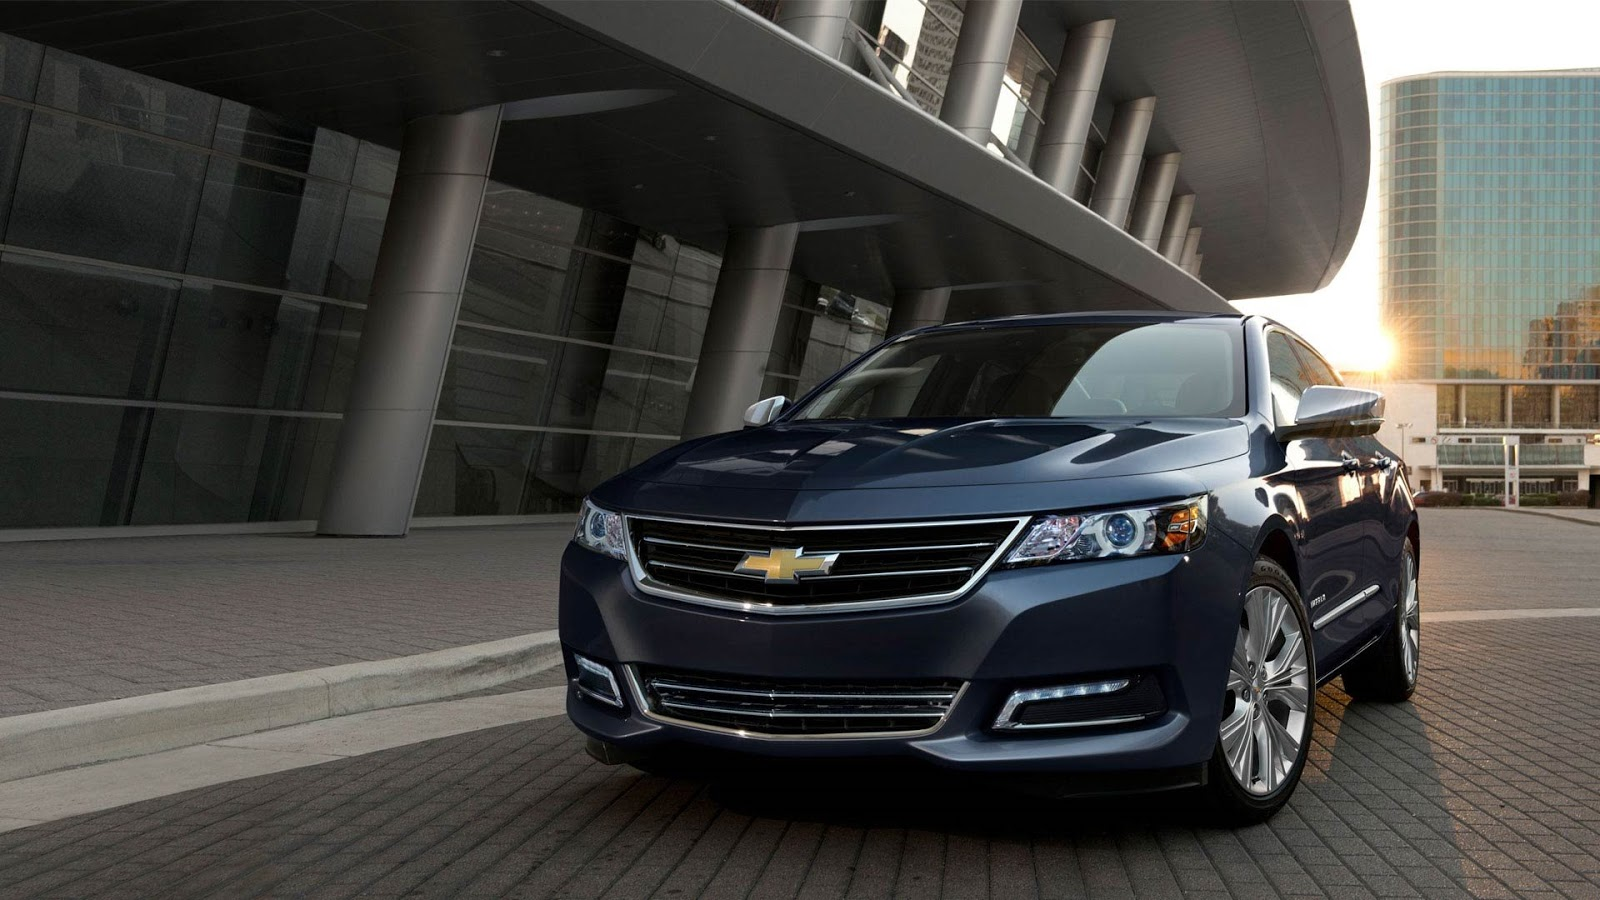 According to some information this latest generation of the impala will focus on fuel efficiency is better without ignoring on the performance of the car